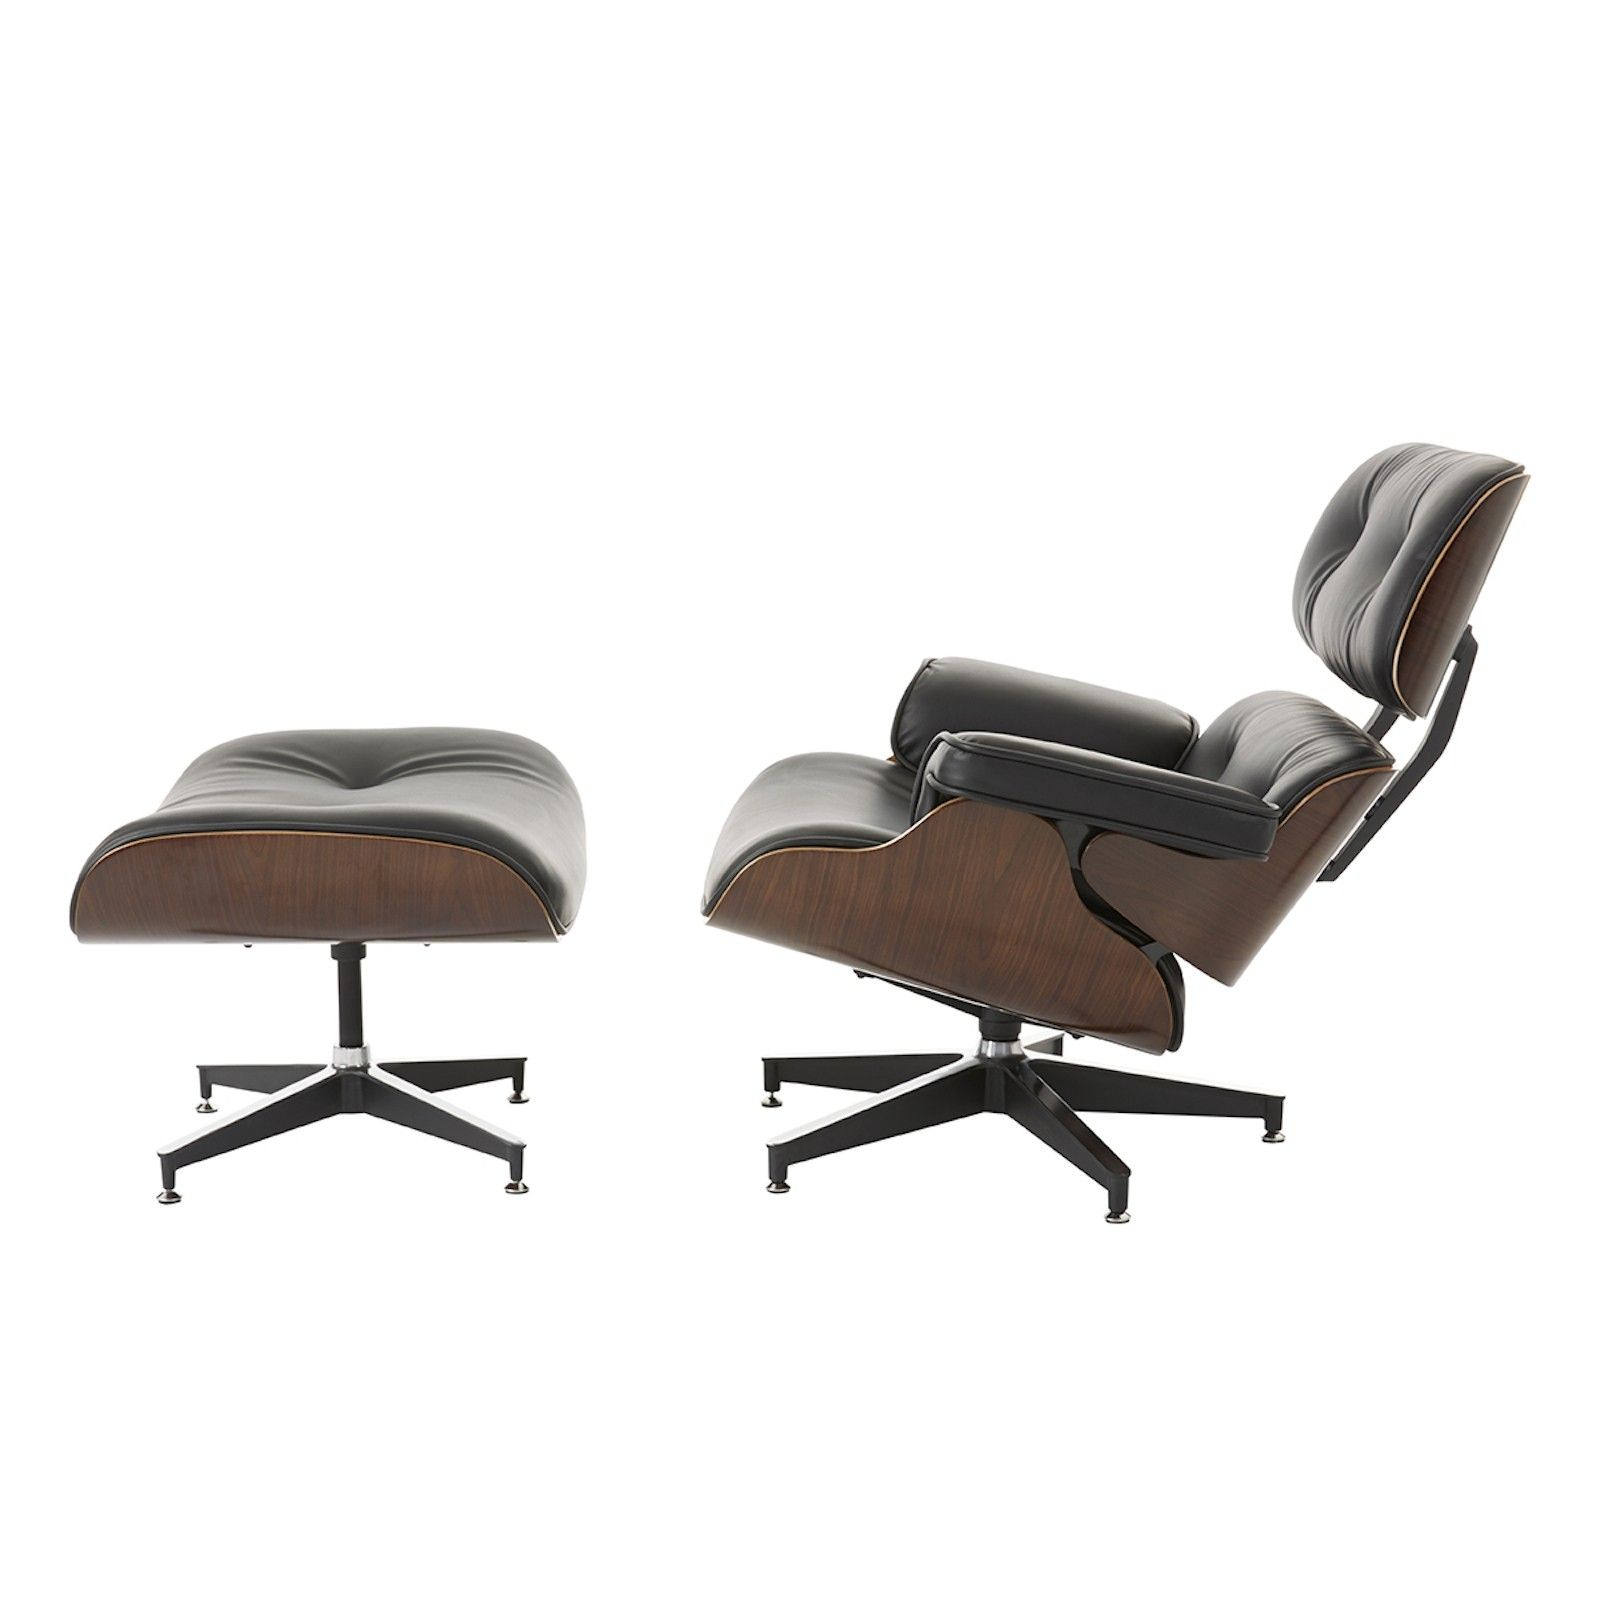 Replica Eames Lounge Chair - Standard - Chairs Nick Scali Online  sc 1 st  Pinterest & Replica Eames Lounge Chair - Standard - Chairs Nick Scali Online ...